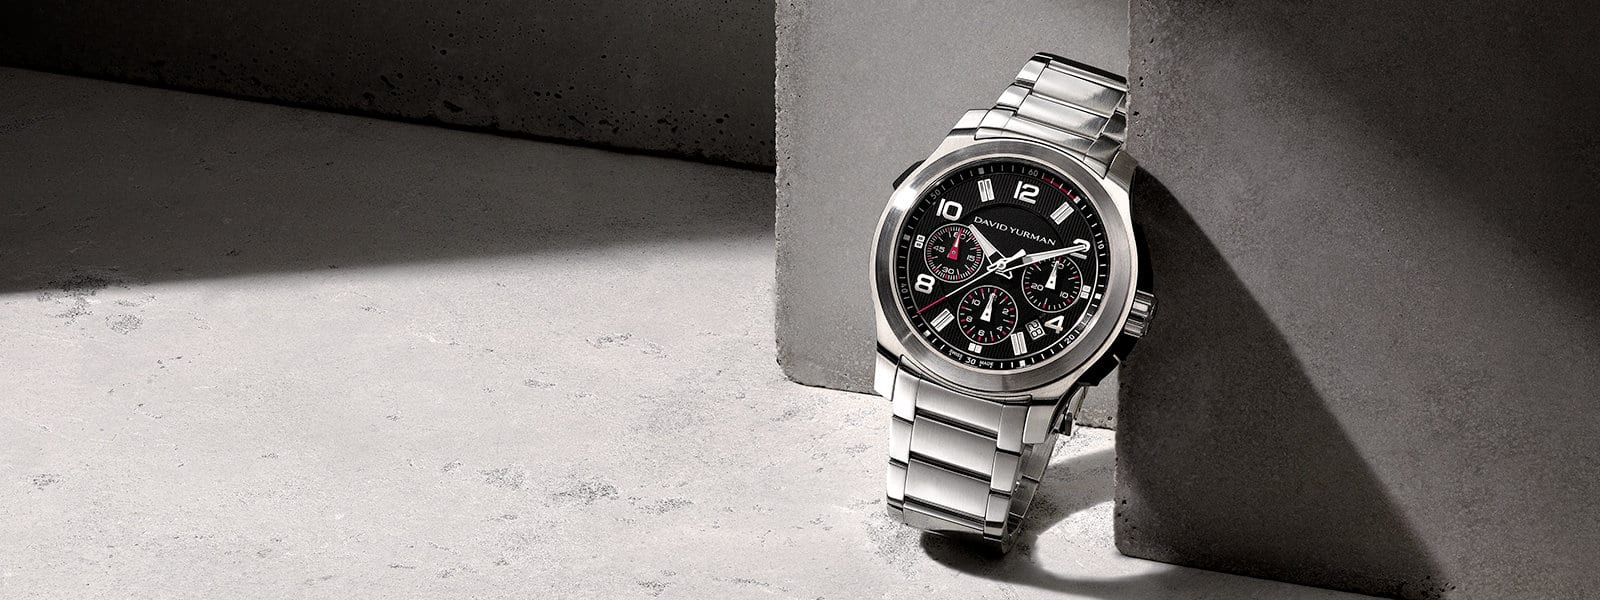 A David Yurman Men's Revolution 43.5mm chronograph watch in stainless steel leaning upright against a grey textured stone and casting a long shadow.